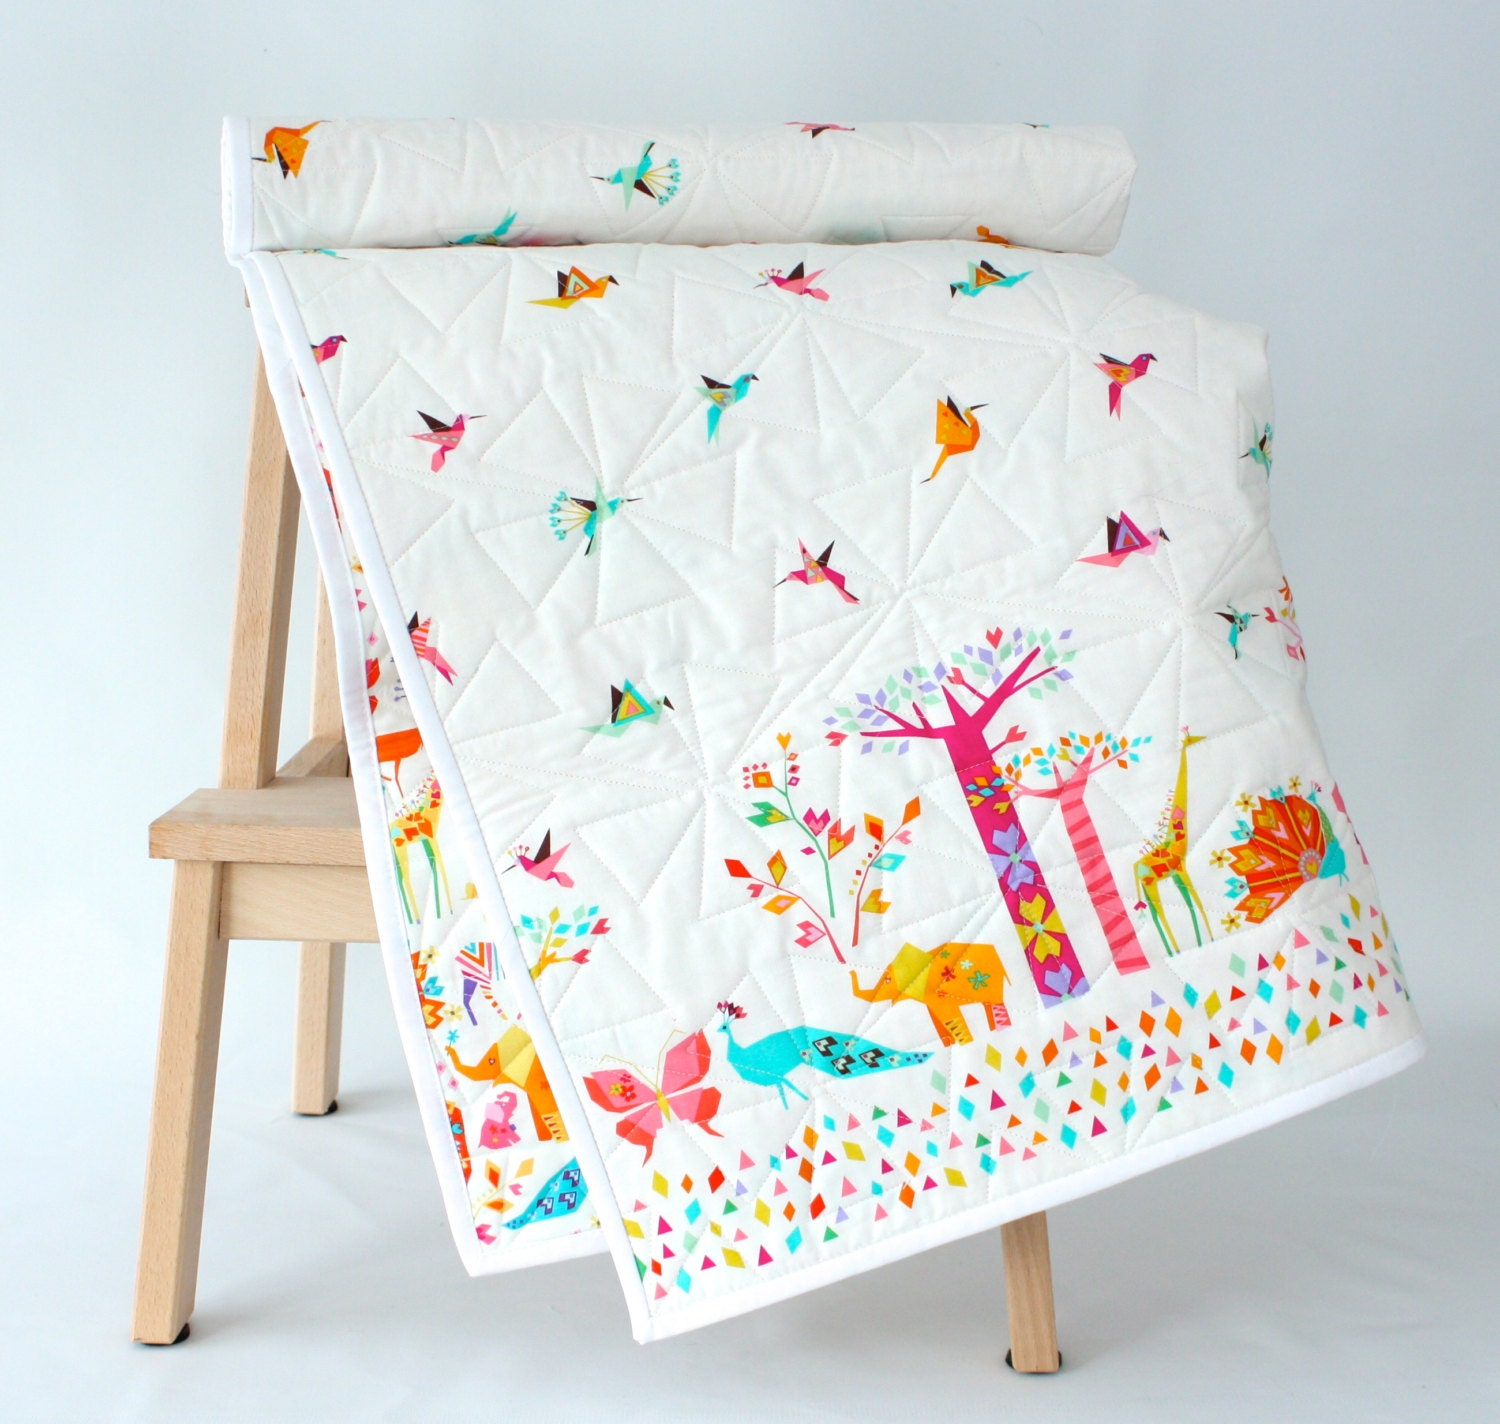 Origami Cranes And Animals Modern Baby Quilt Baby Blanket